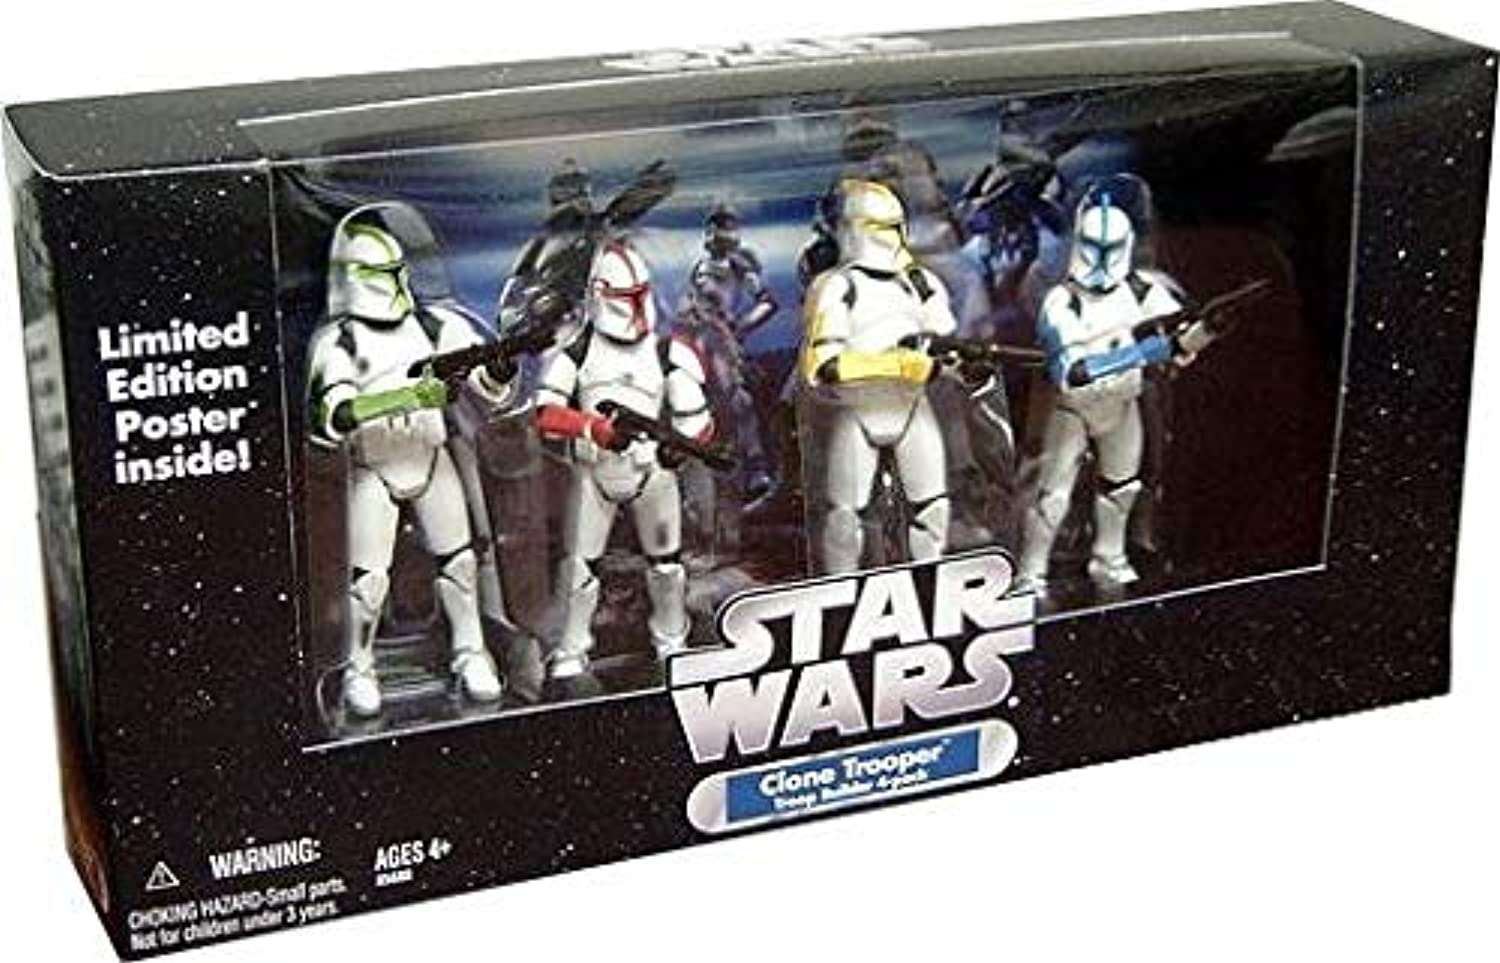 Collector Set  Clone Trooper Officer  4 Trooper  Attack of the Clones  - Star Wars The Original Trilogy Collection von Hasbro